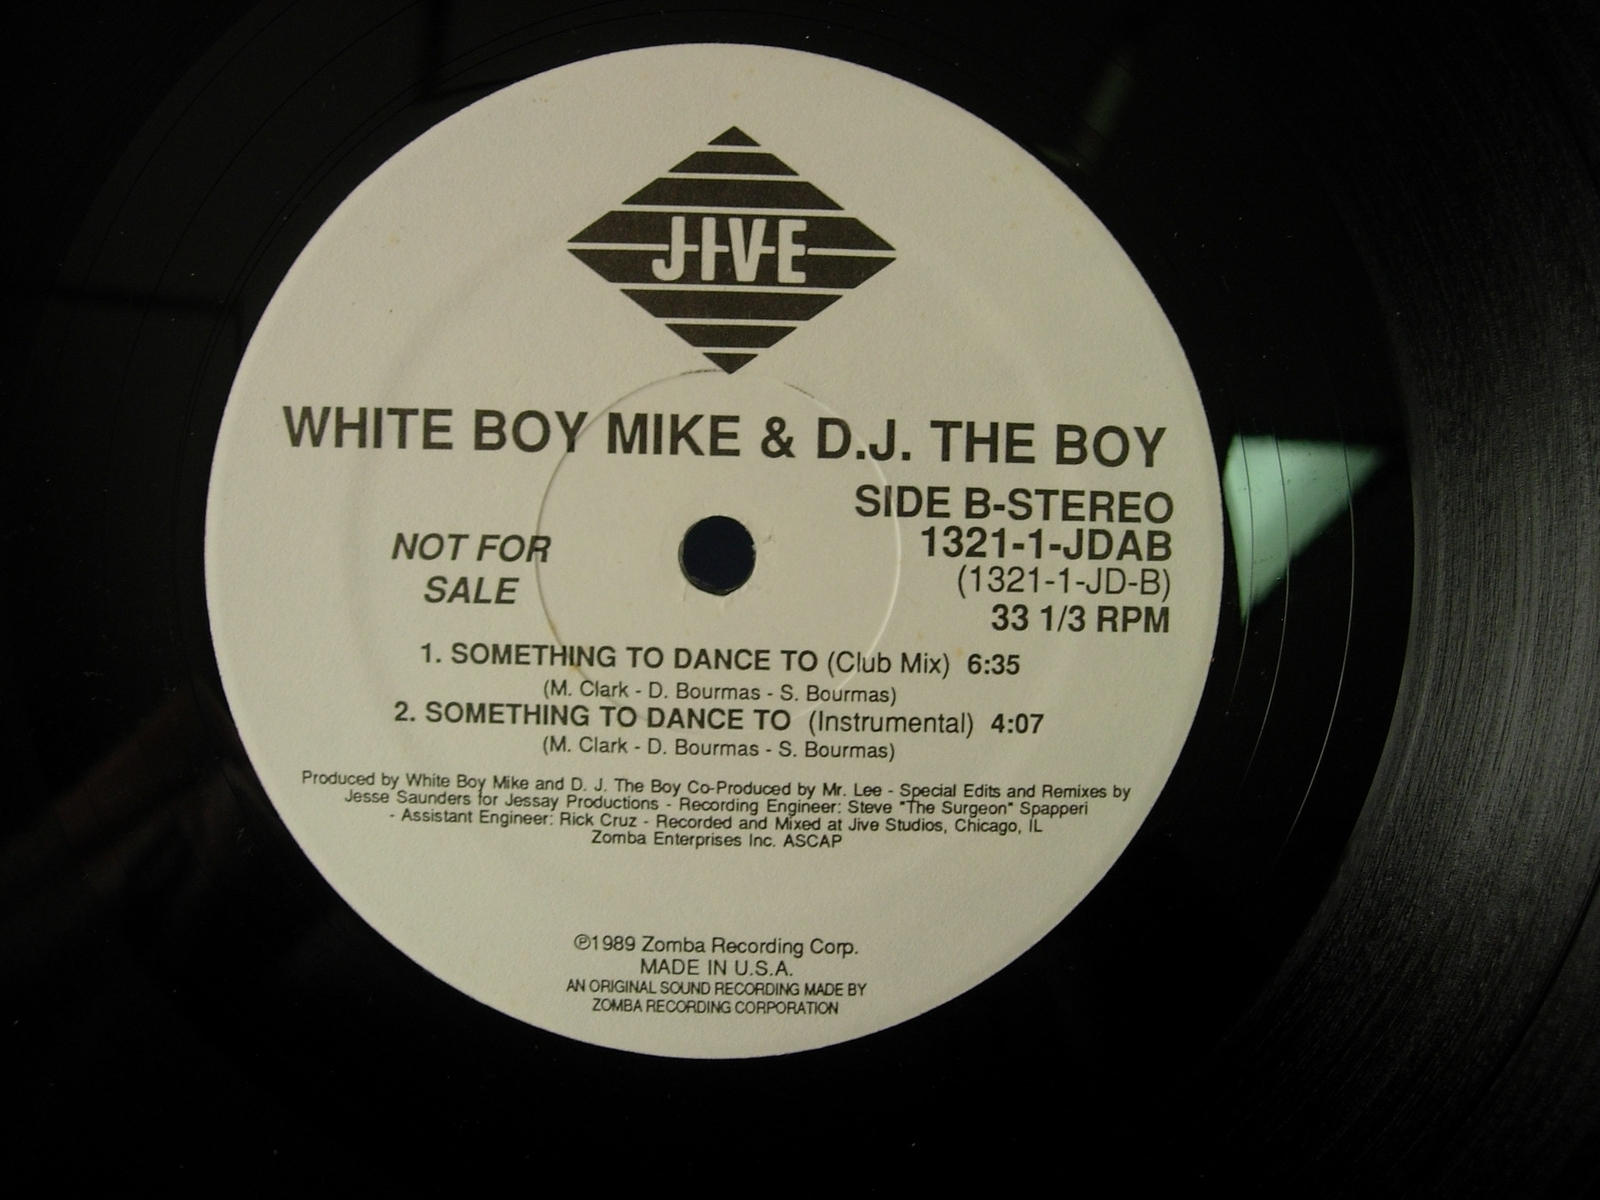 White Boy Mike & D.J. the Boy - Something To Dance To - Jive 1321-1-JDAB PROMO